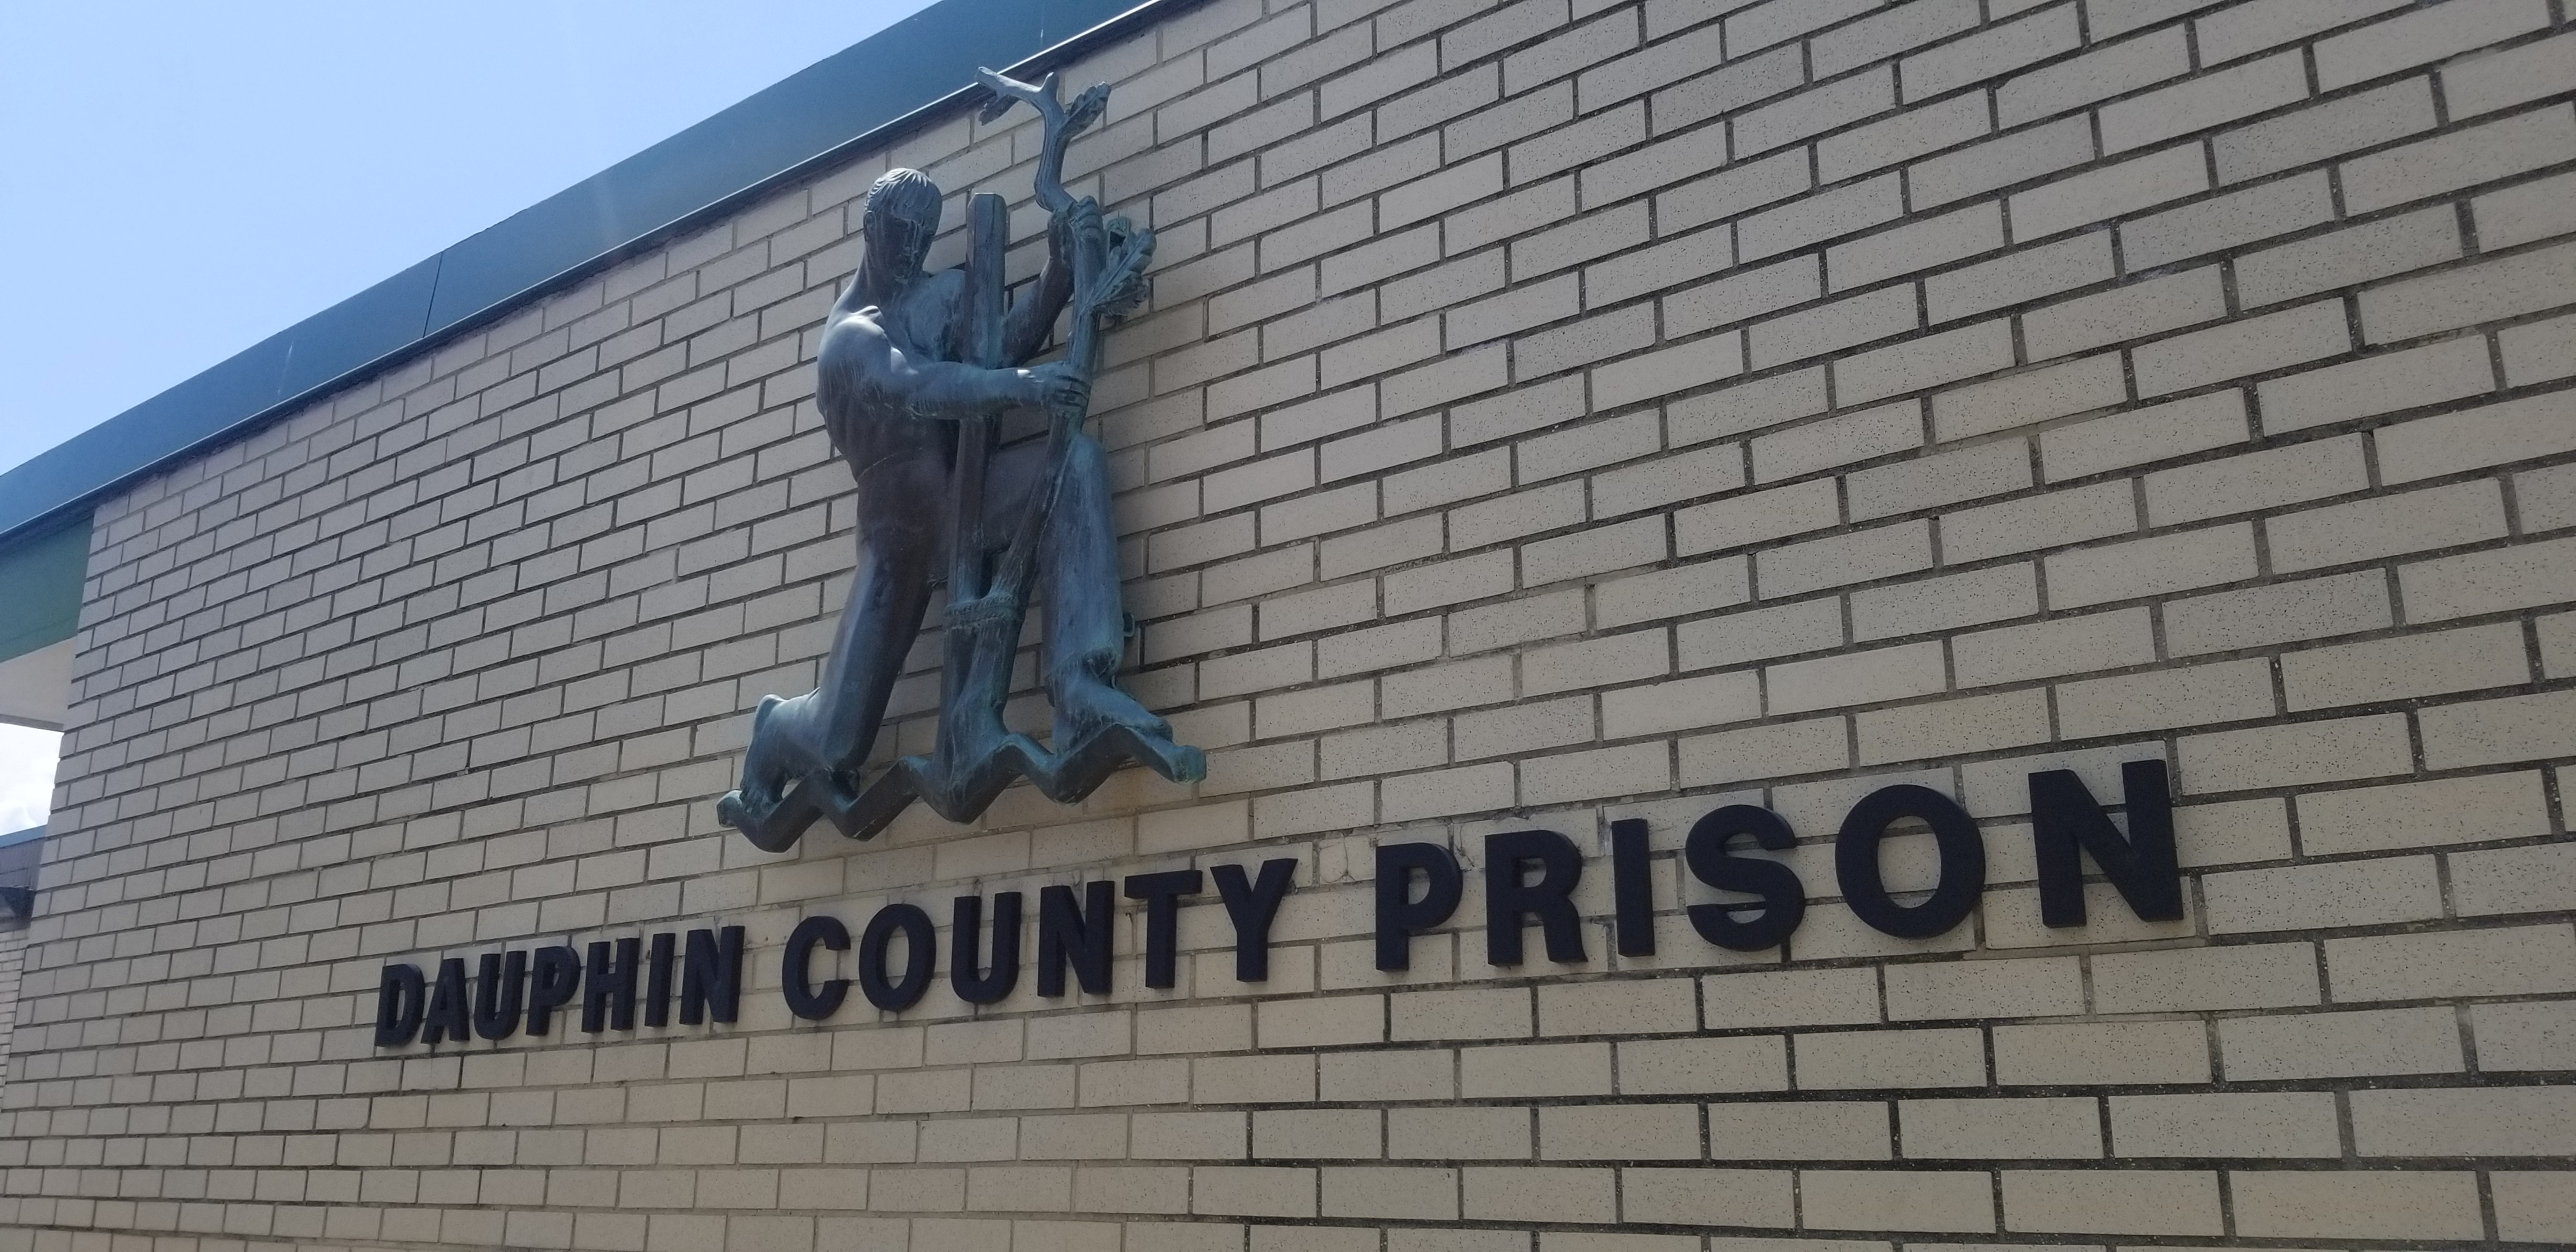 Dauphin County prisoner survives suicide attempt